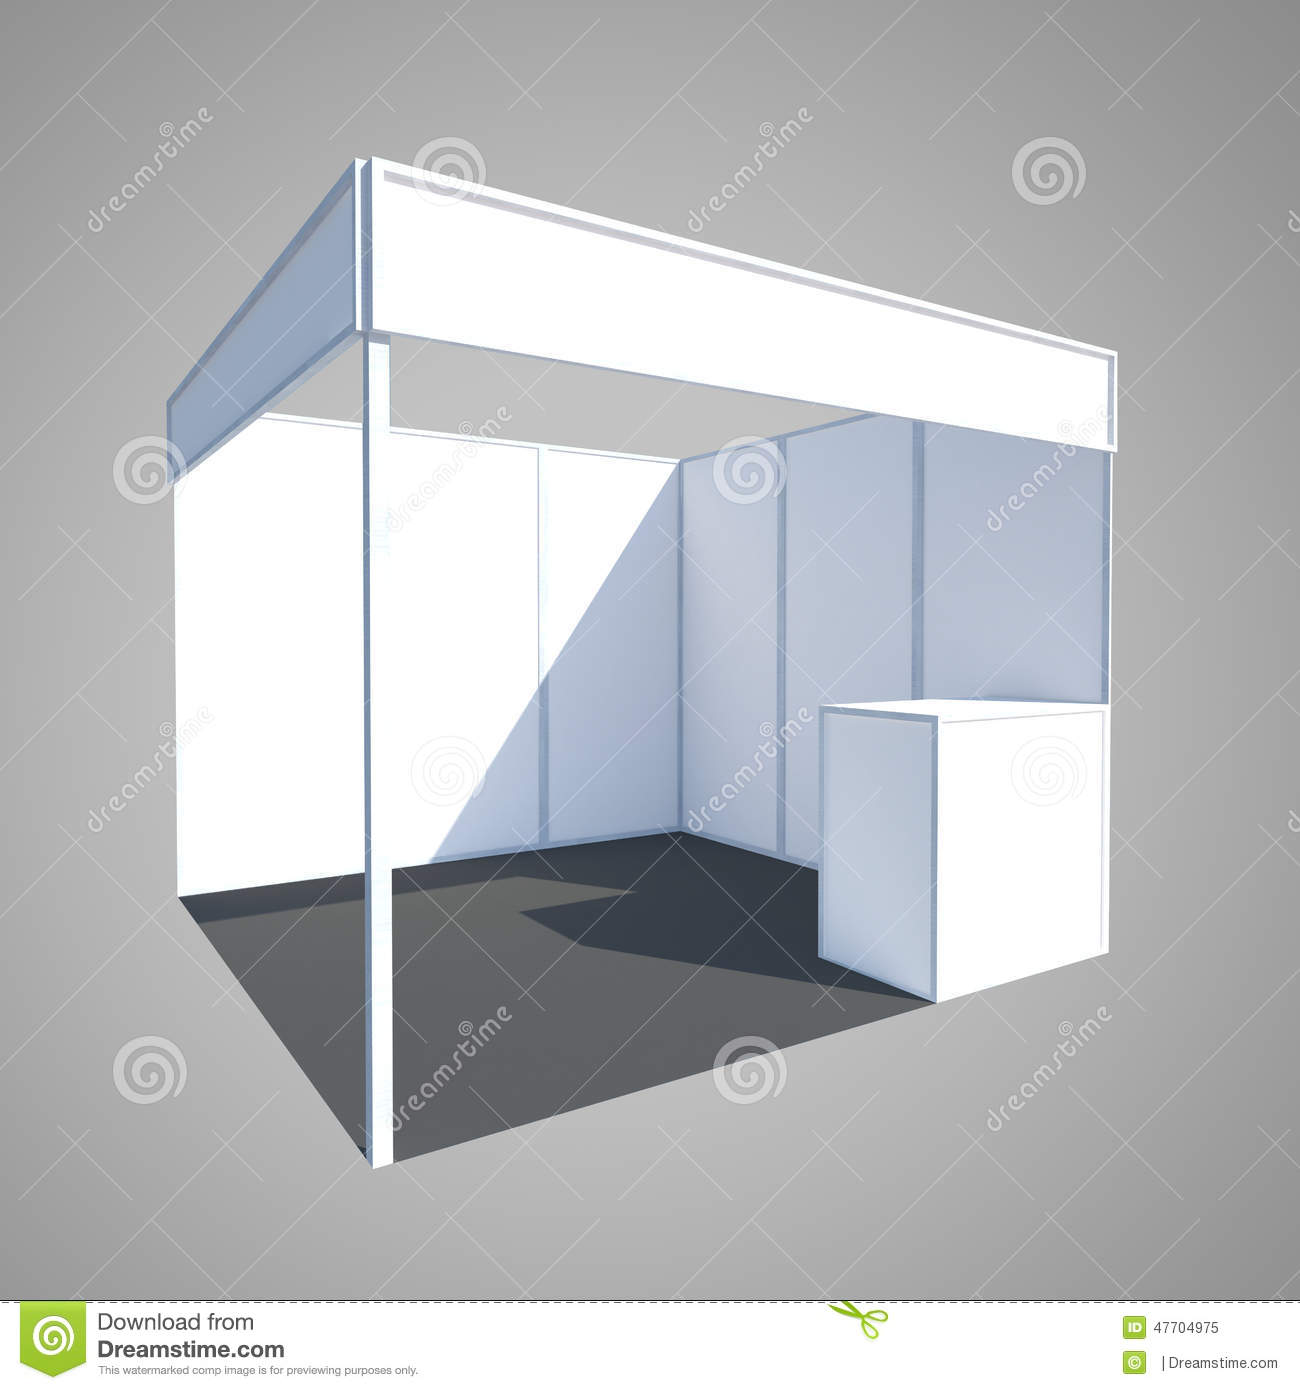 Exhibition Booth Banner : Exhibition booth display stand fair stock illustration